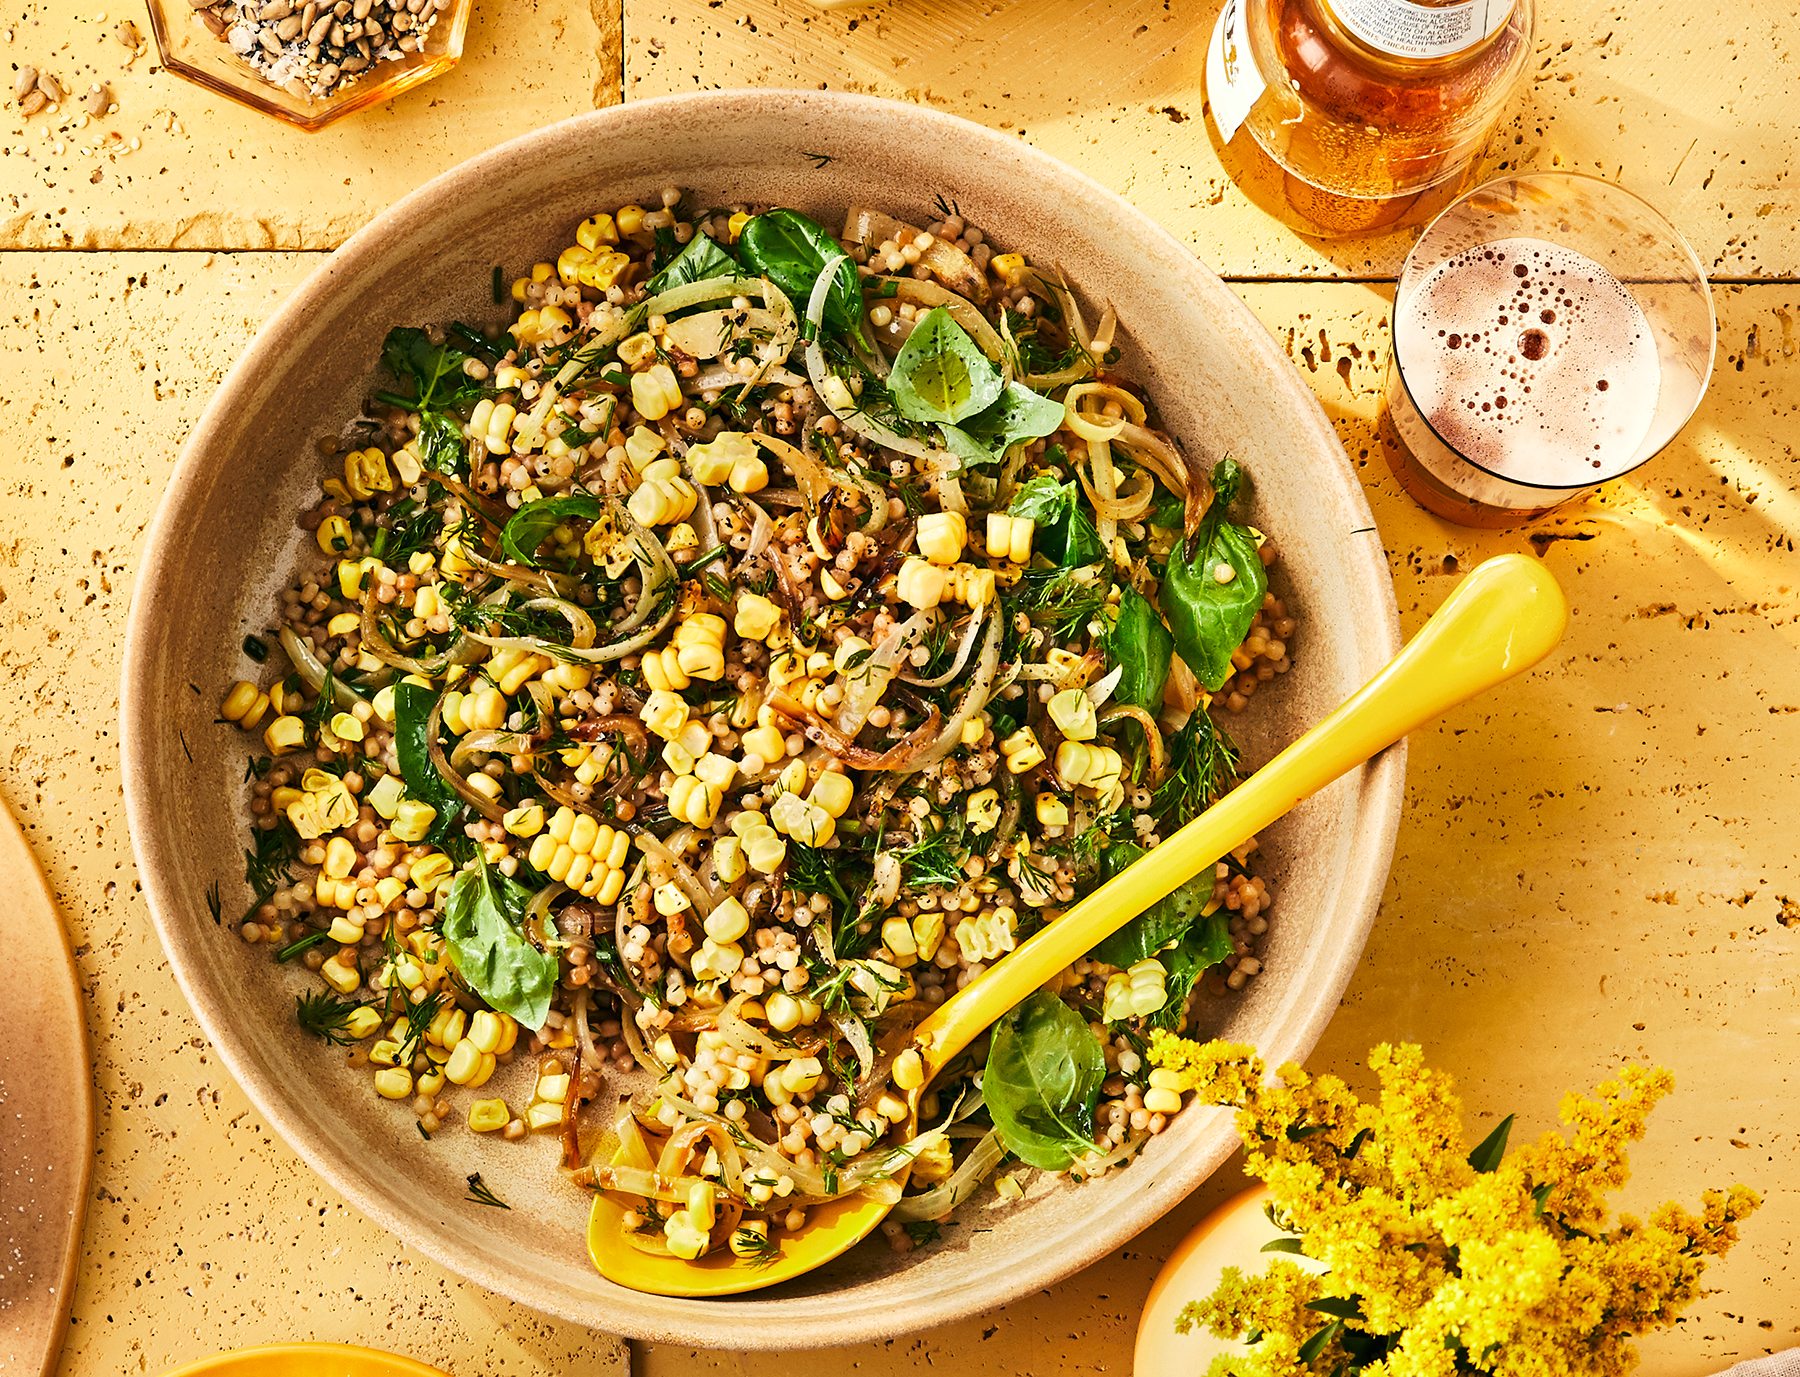 Toasted Israeli Couscous With Corn and Herbs